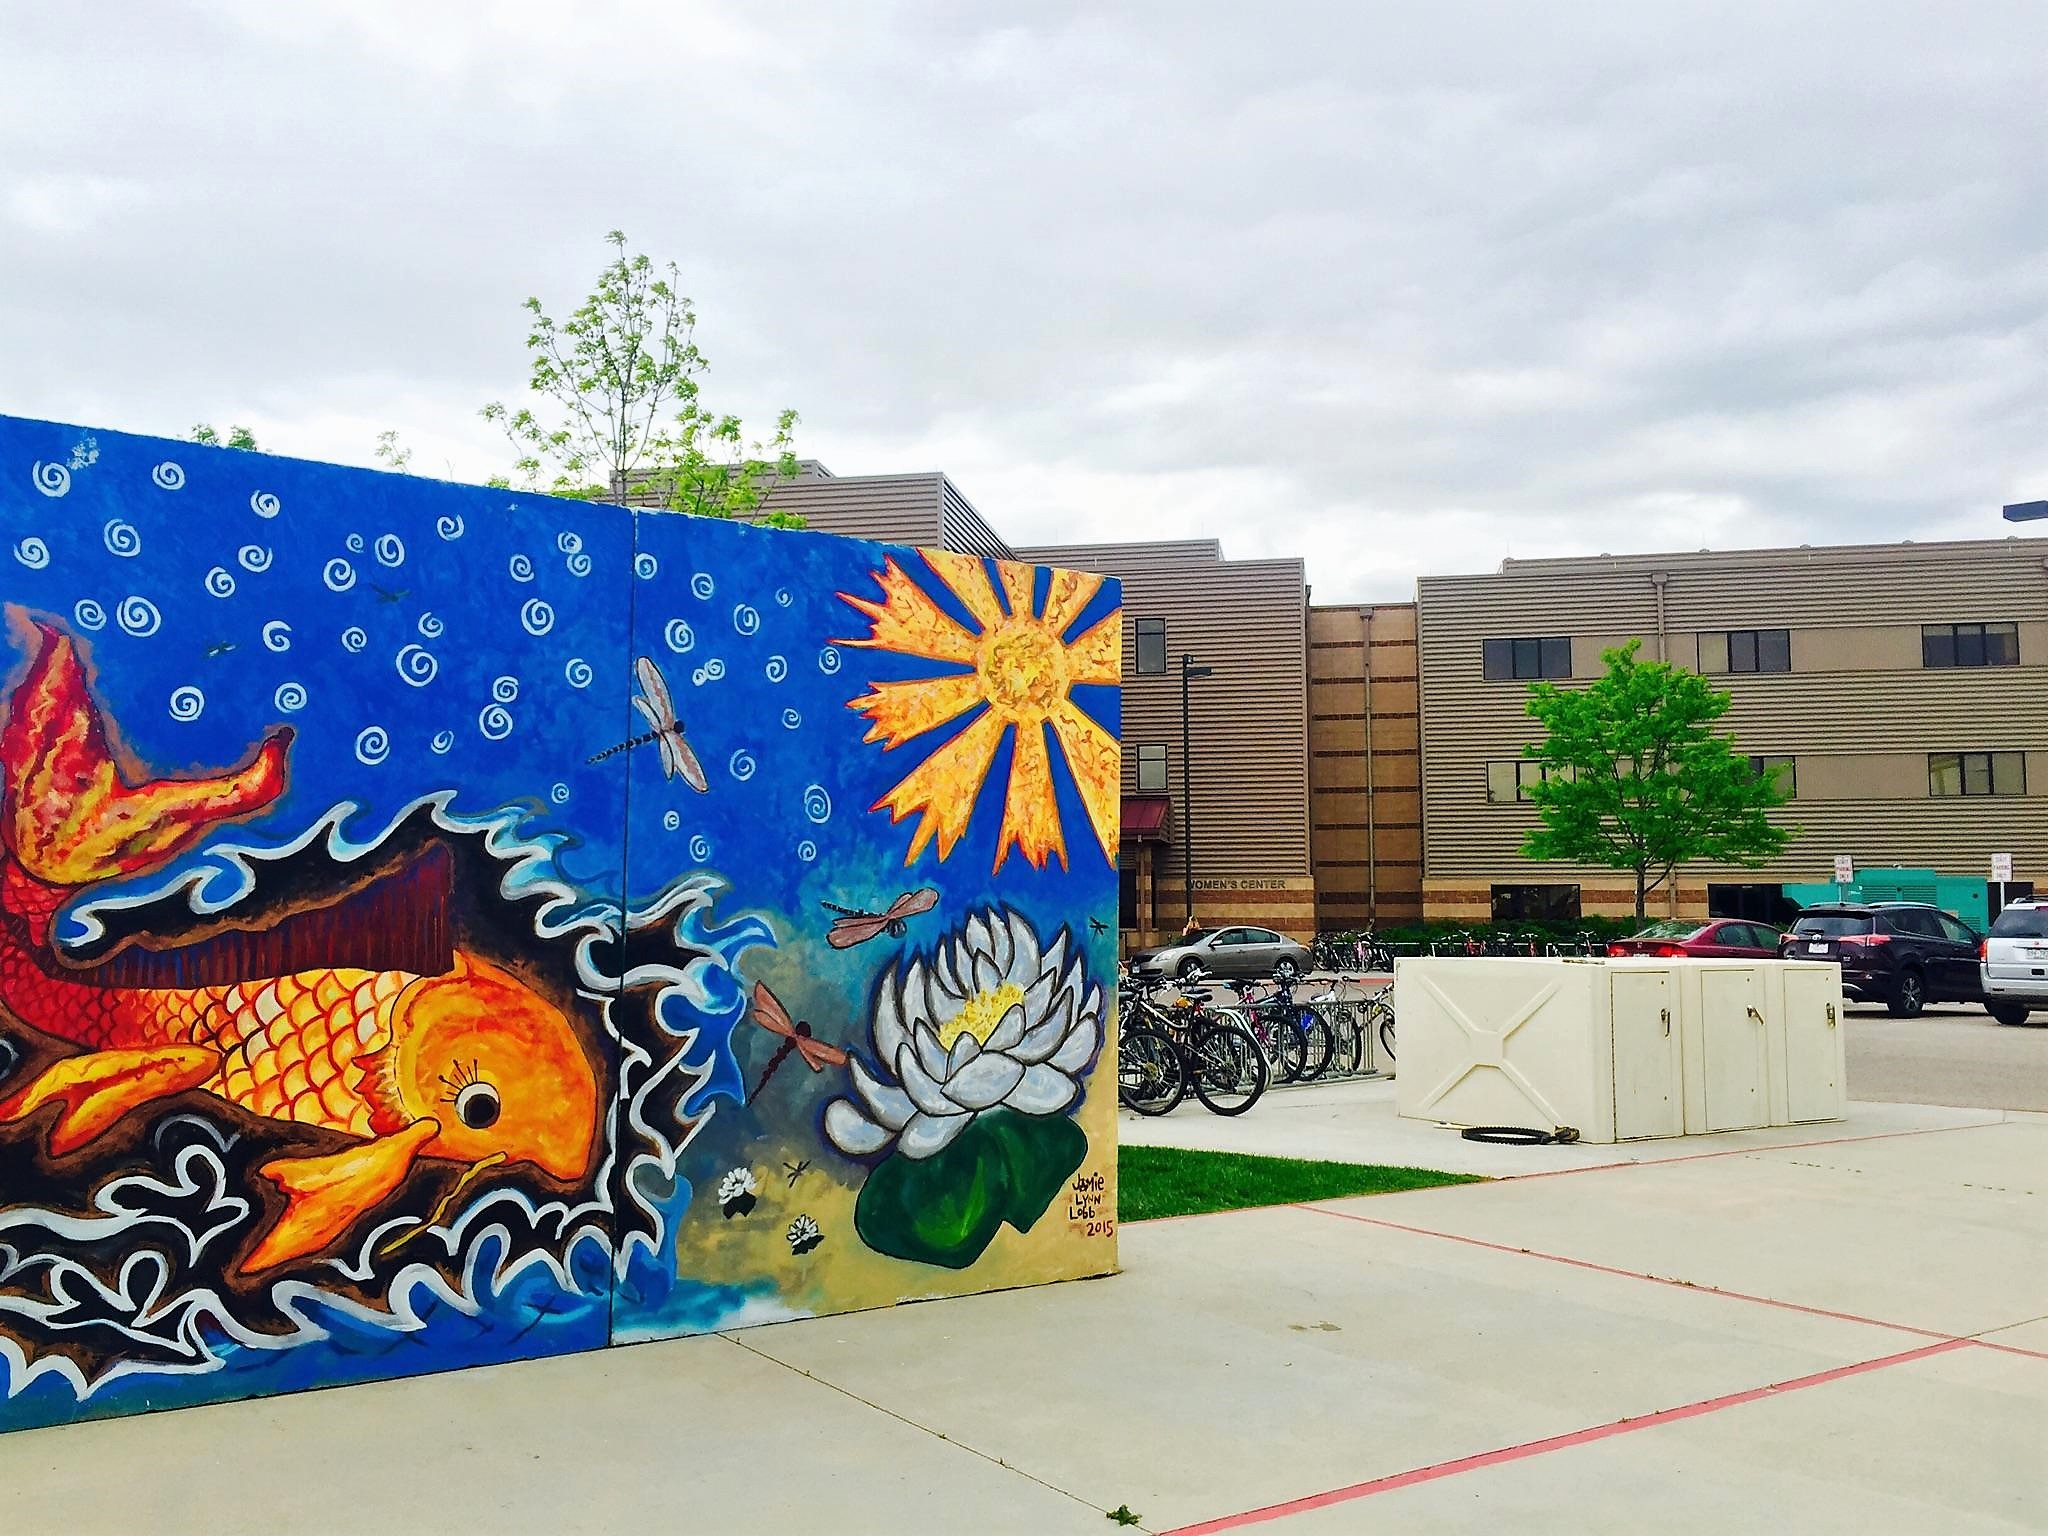 Image 4: Help people achieve their best (Community Corrections recreation mural)